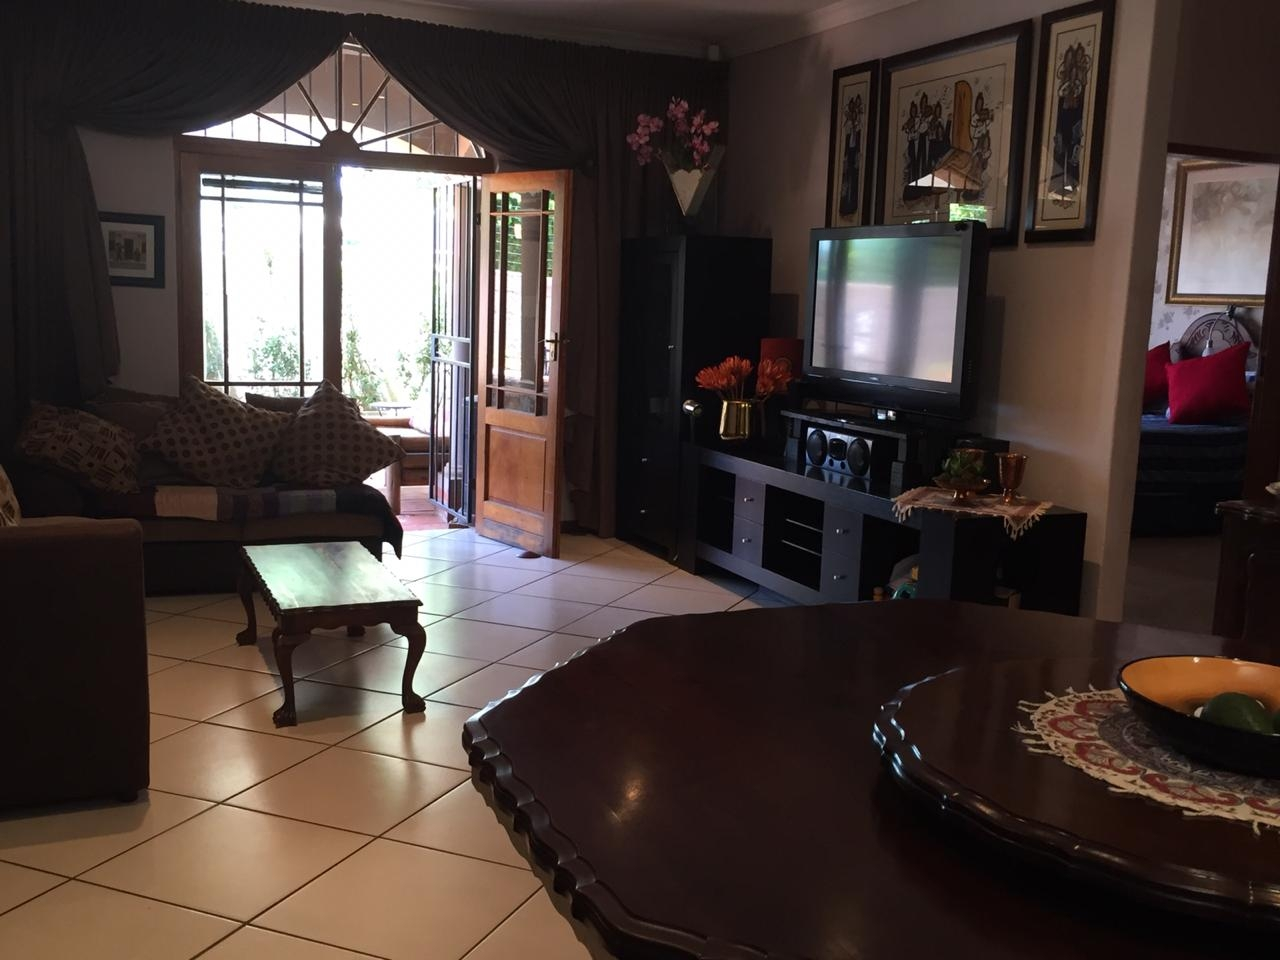 View of living area from front entrance